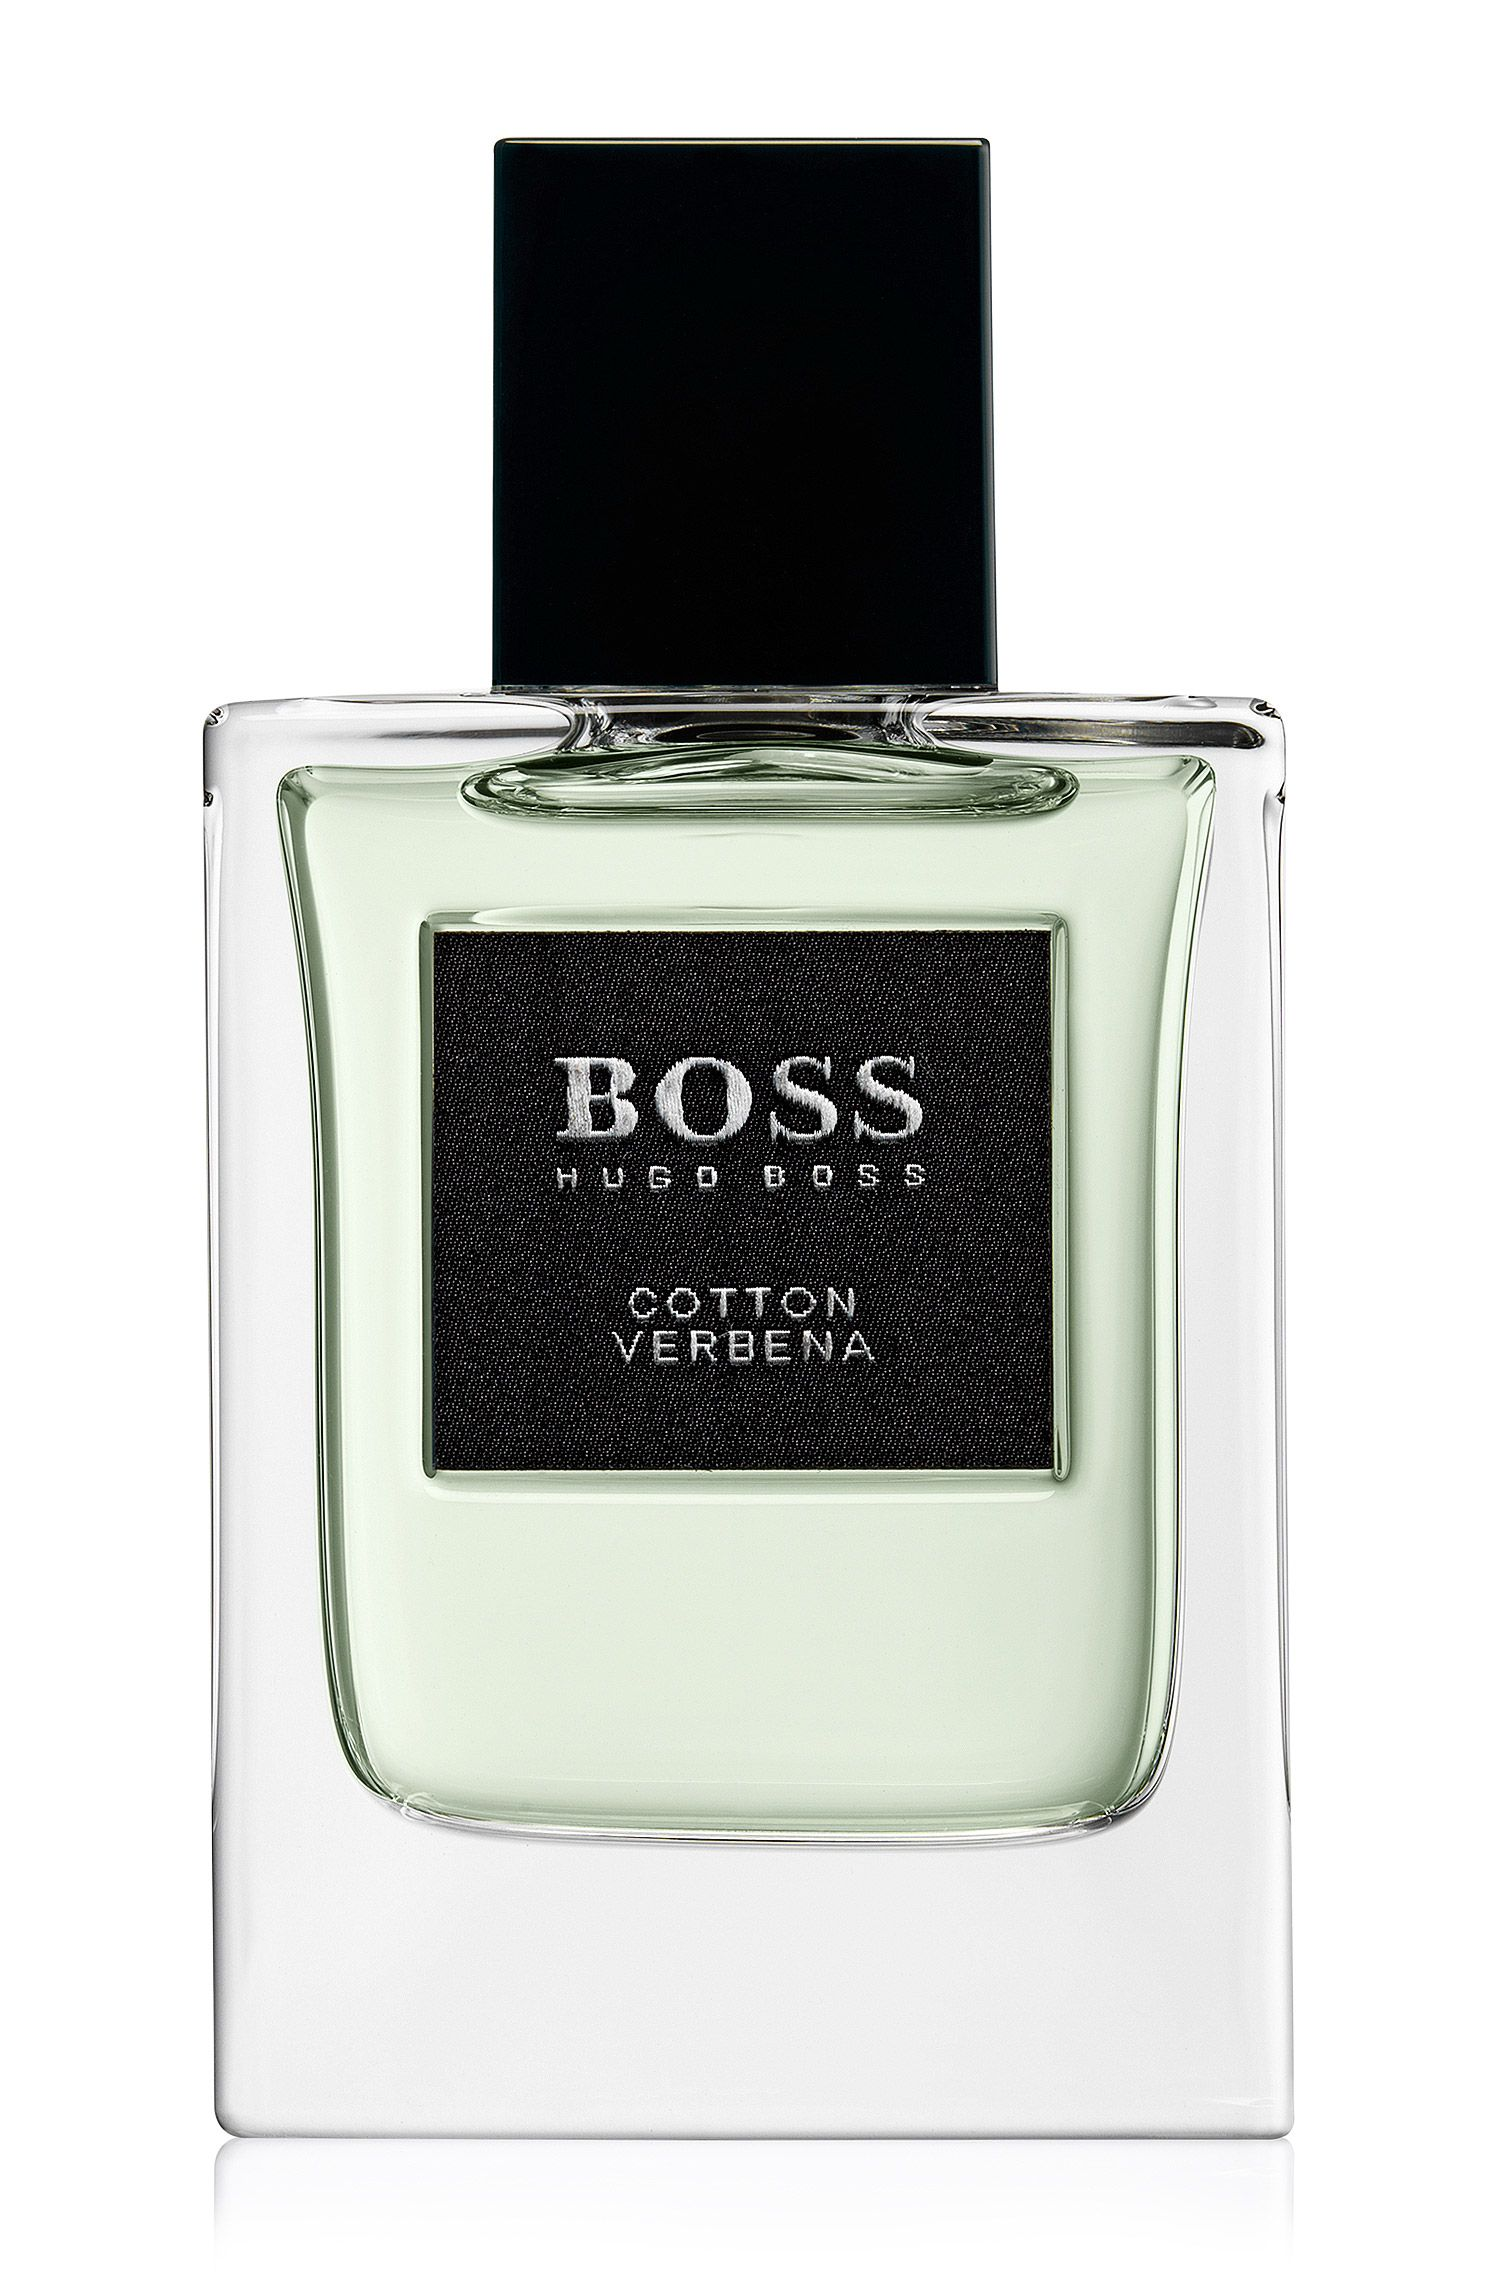 BOSS The Collection - Eau de Parfum Cotton Verbena